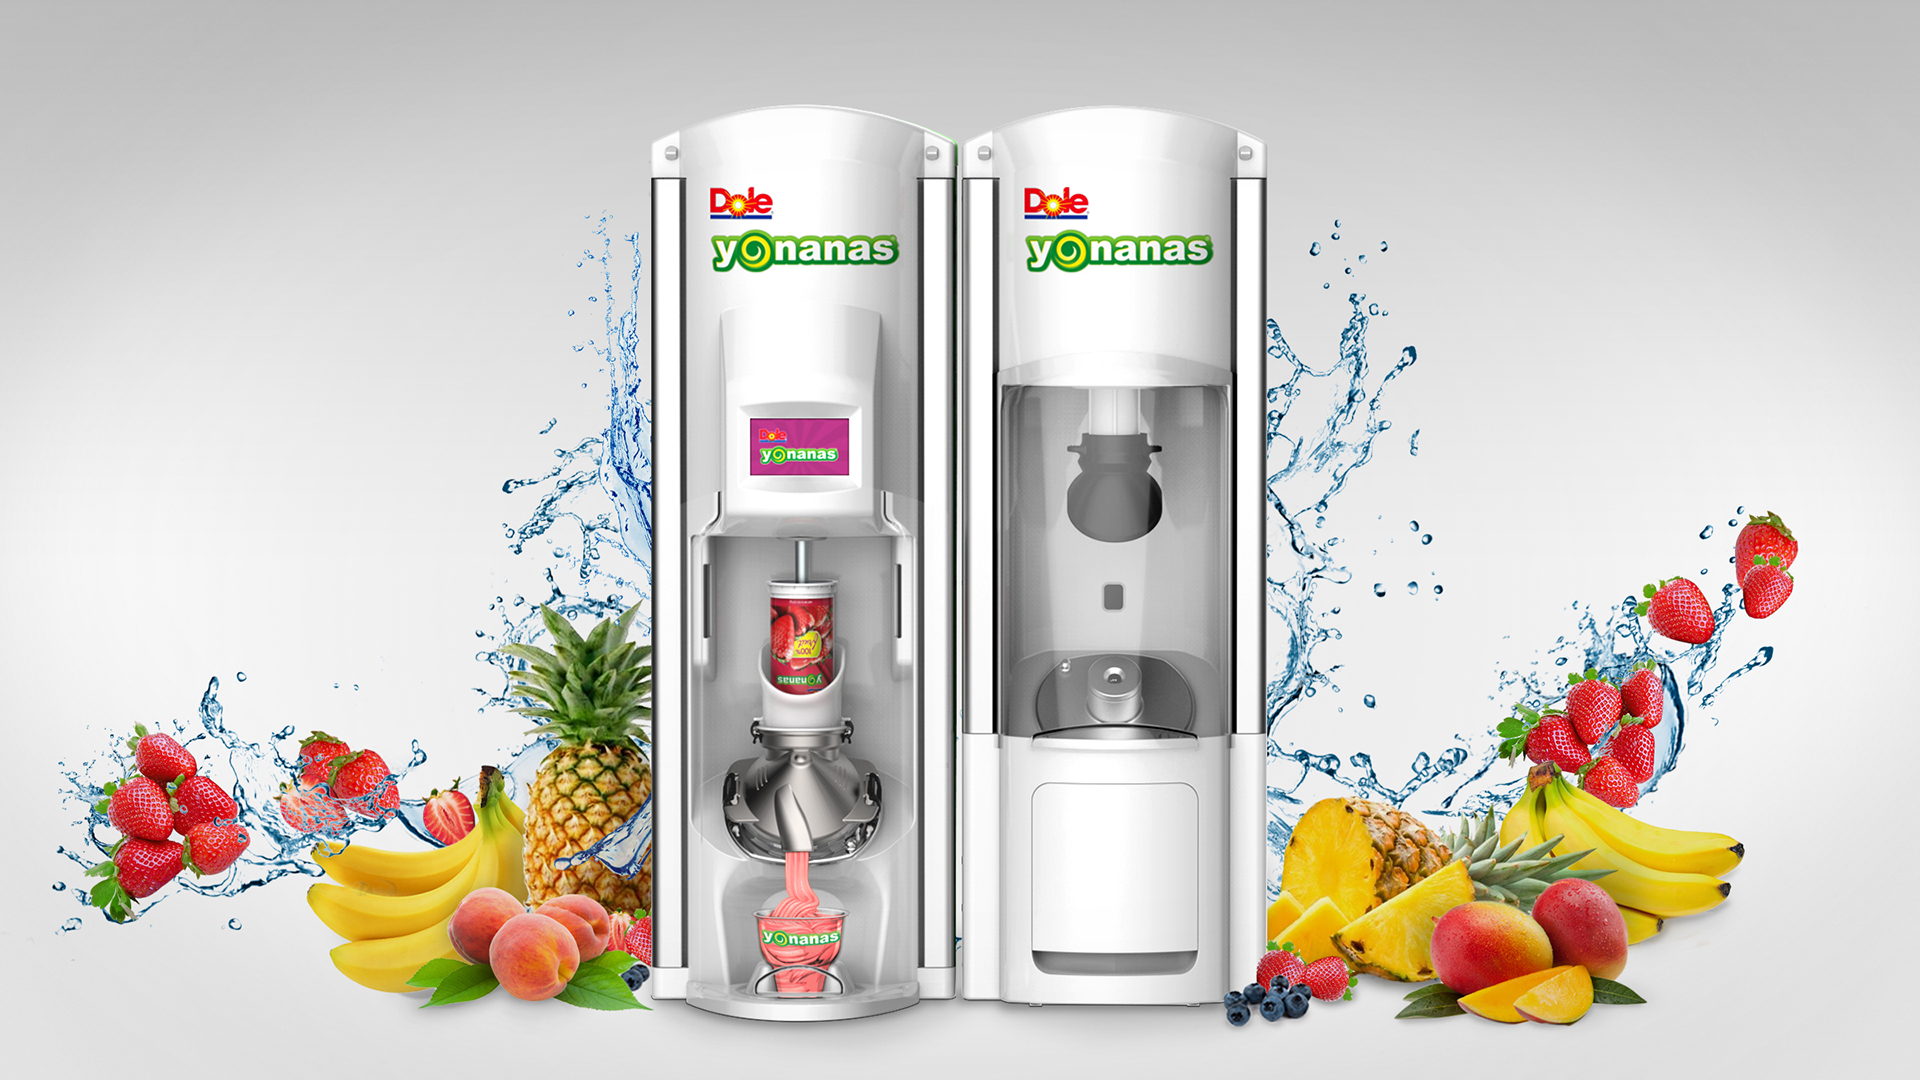 priority_designs_yonanas_fruit_dessert_dispense_commercial_machine_engineering_prototyping_011